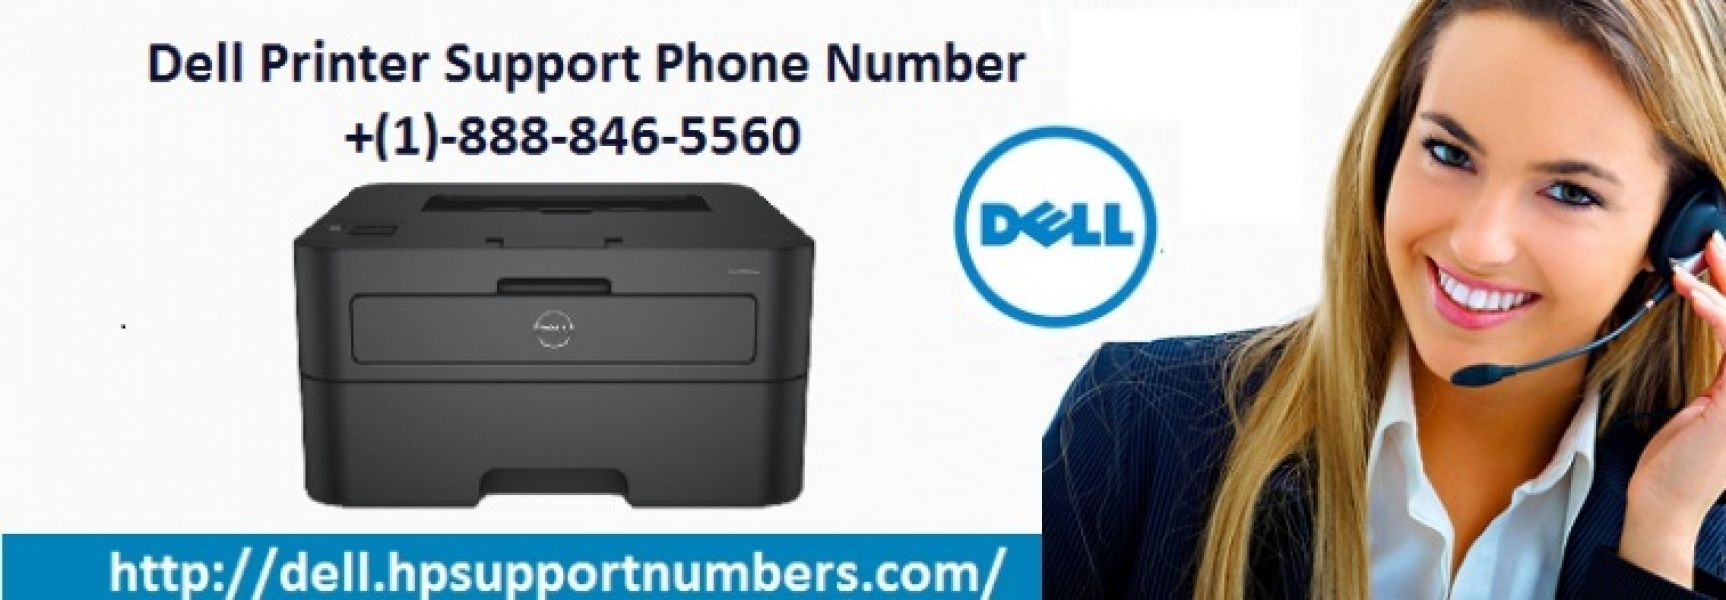 Dell Printer Tech Support Phone Number | +(1)-888-846-5560